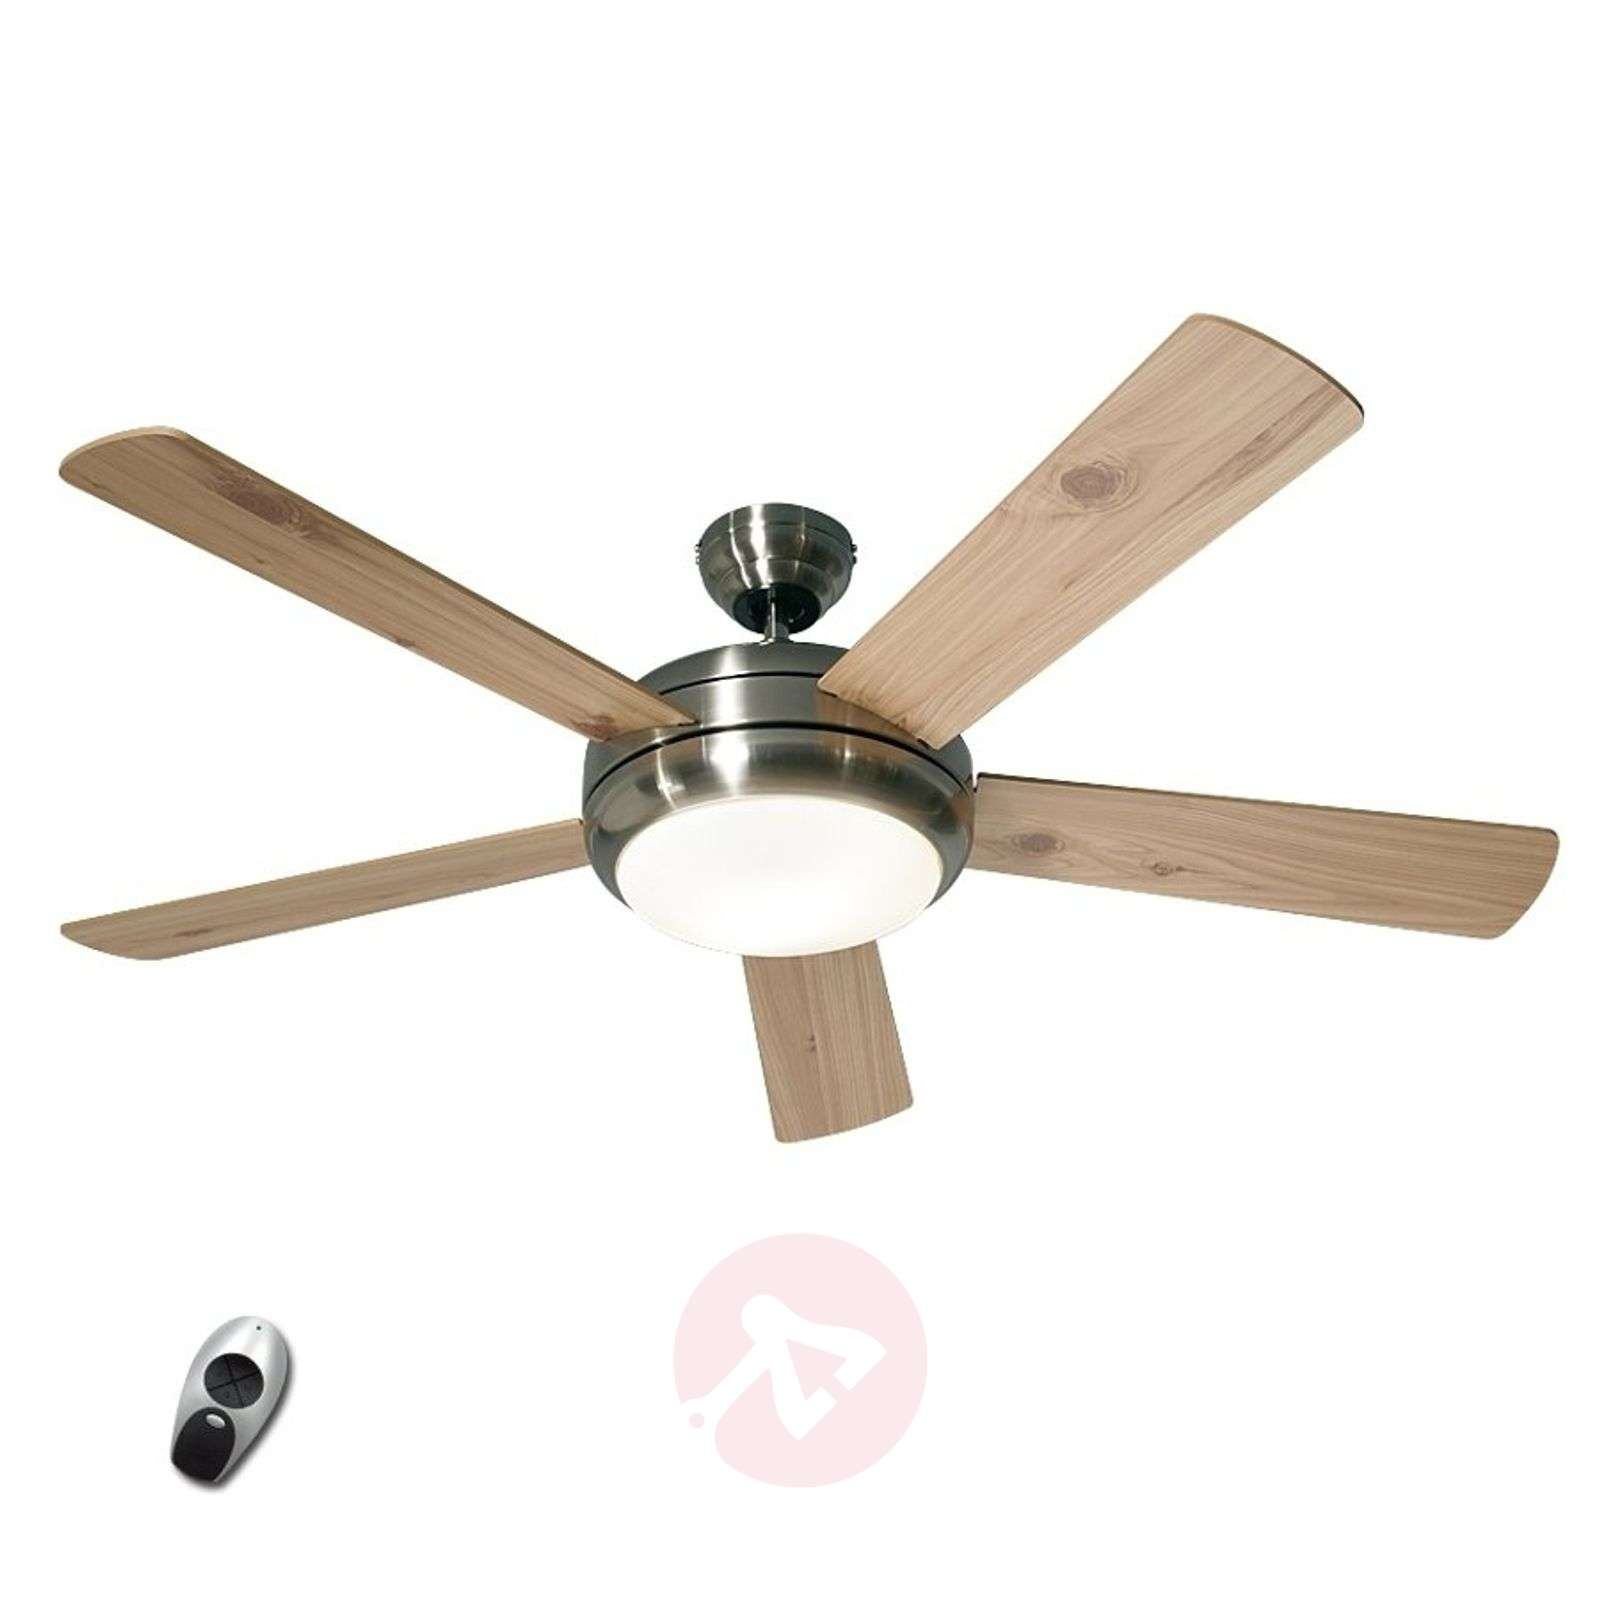 Titanium BN illuminated ceiling fan-2015004-01